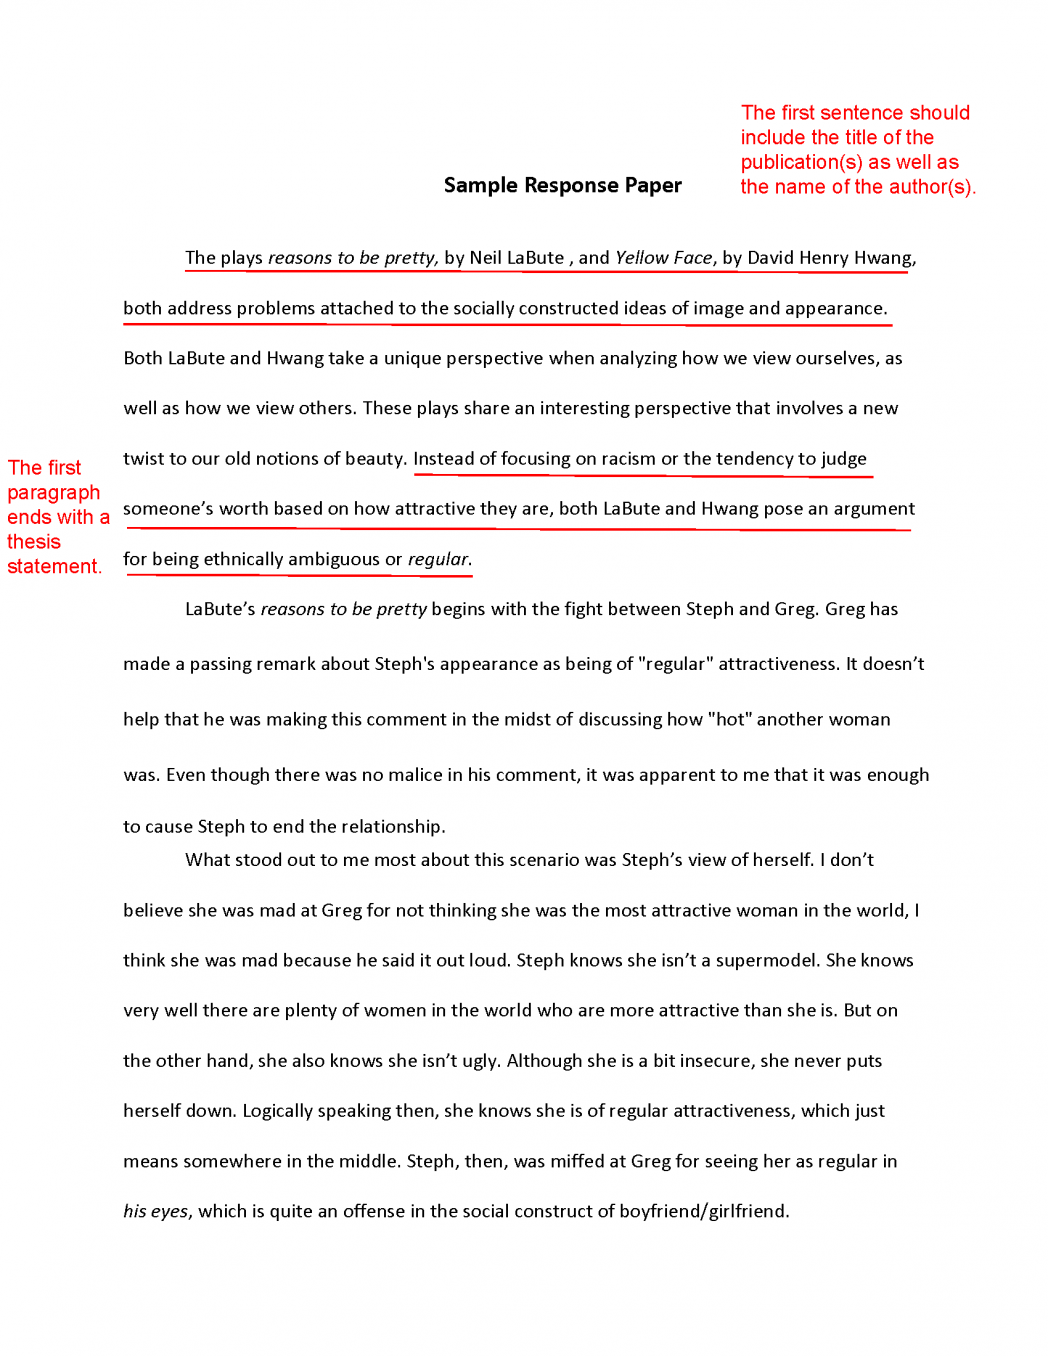 010 How To Essay Write Papers Help Writing English Paper Do The Right Thing Challenge Examples Res Example Movie Marvelous For College Format Topics High School Full